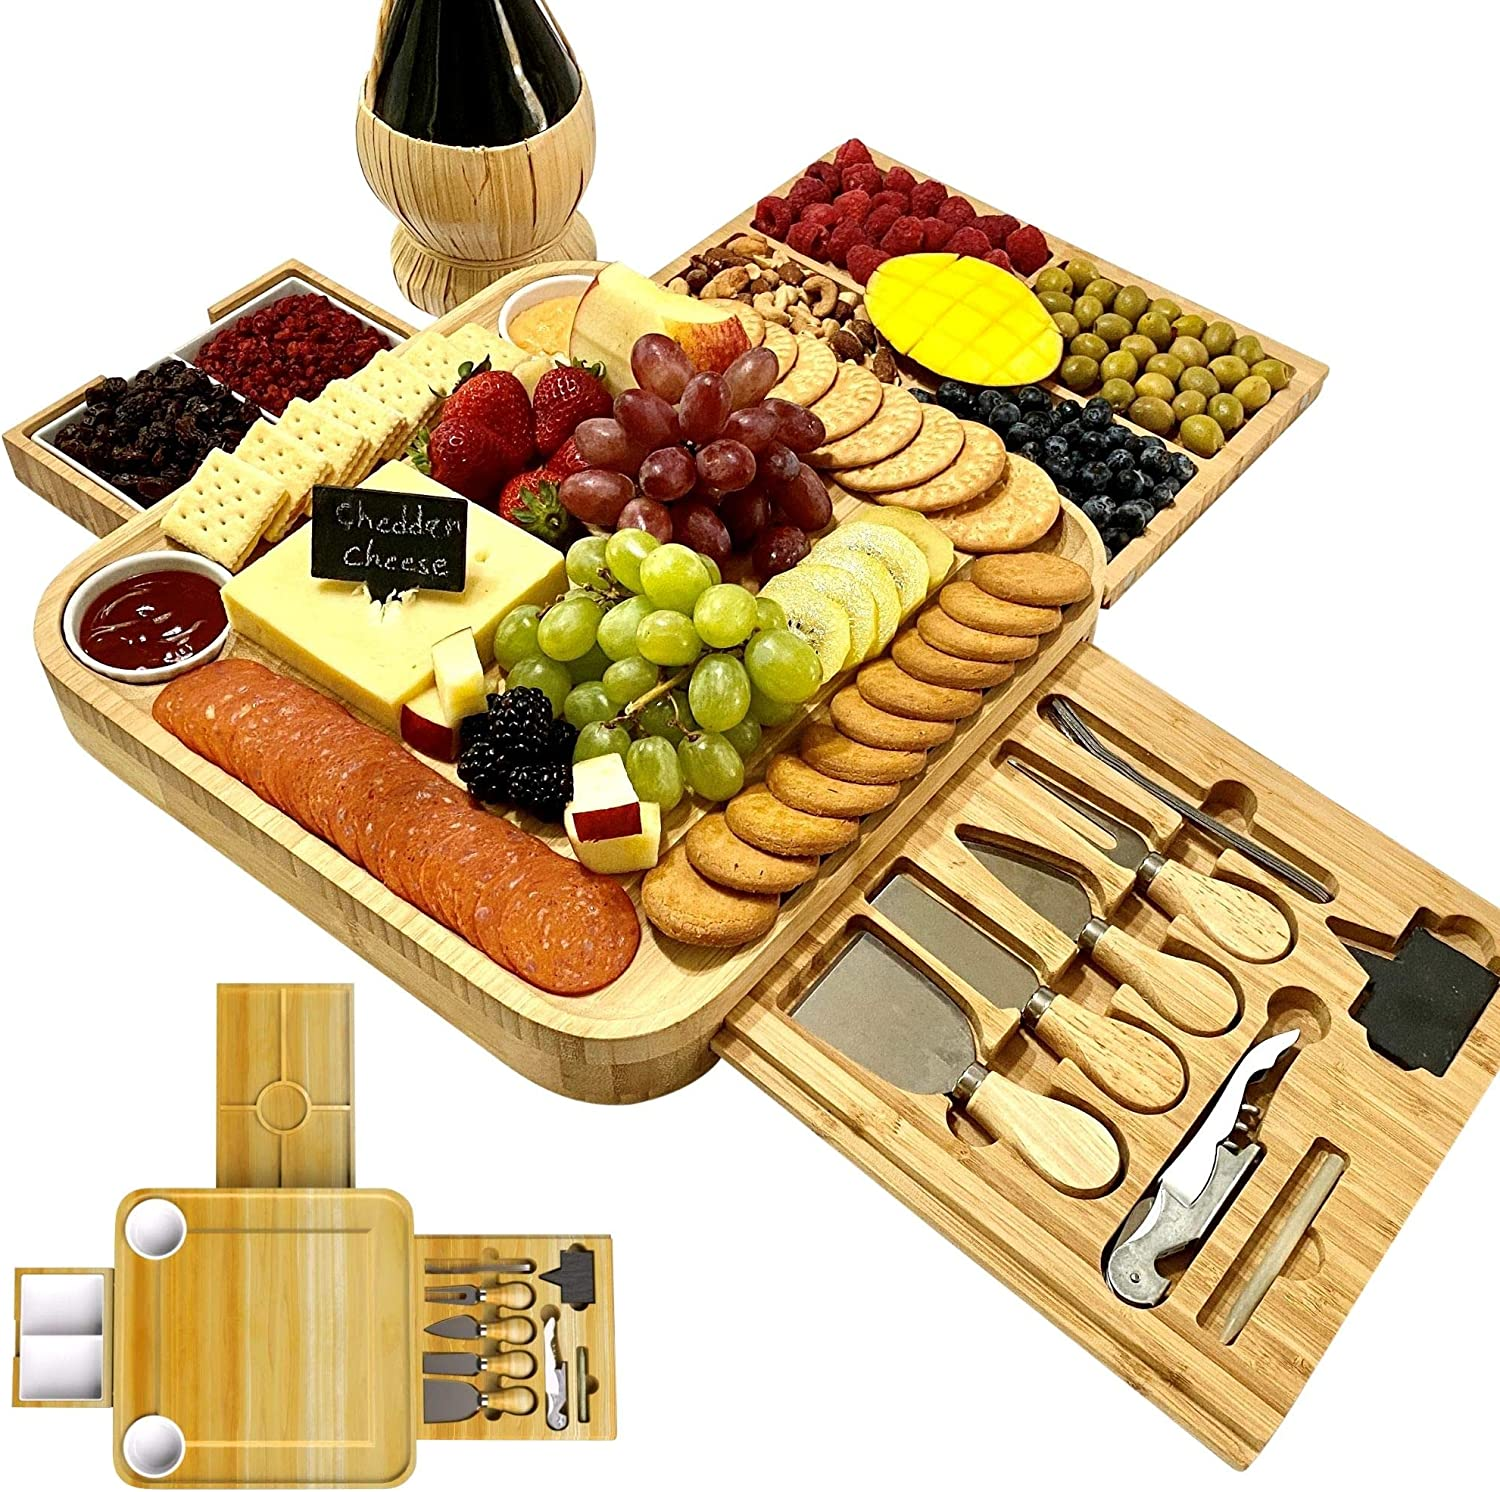 iBambooMart Cheese Board and Knife Set, Wooden Charcuterie, Bamboo Platter & Serving Meat Tray w/Slide-Out Drawers, 4 Knife, 4 fork, Perfect for Christmas, Birthday, Housewarming, Wedding Gifts